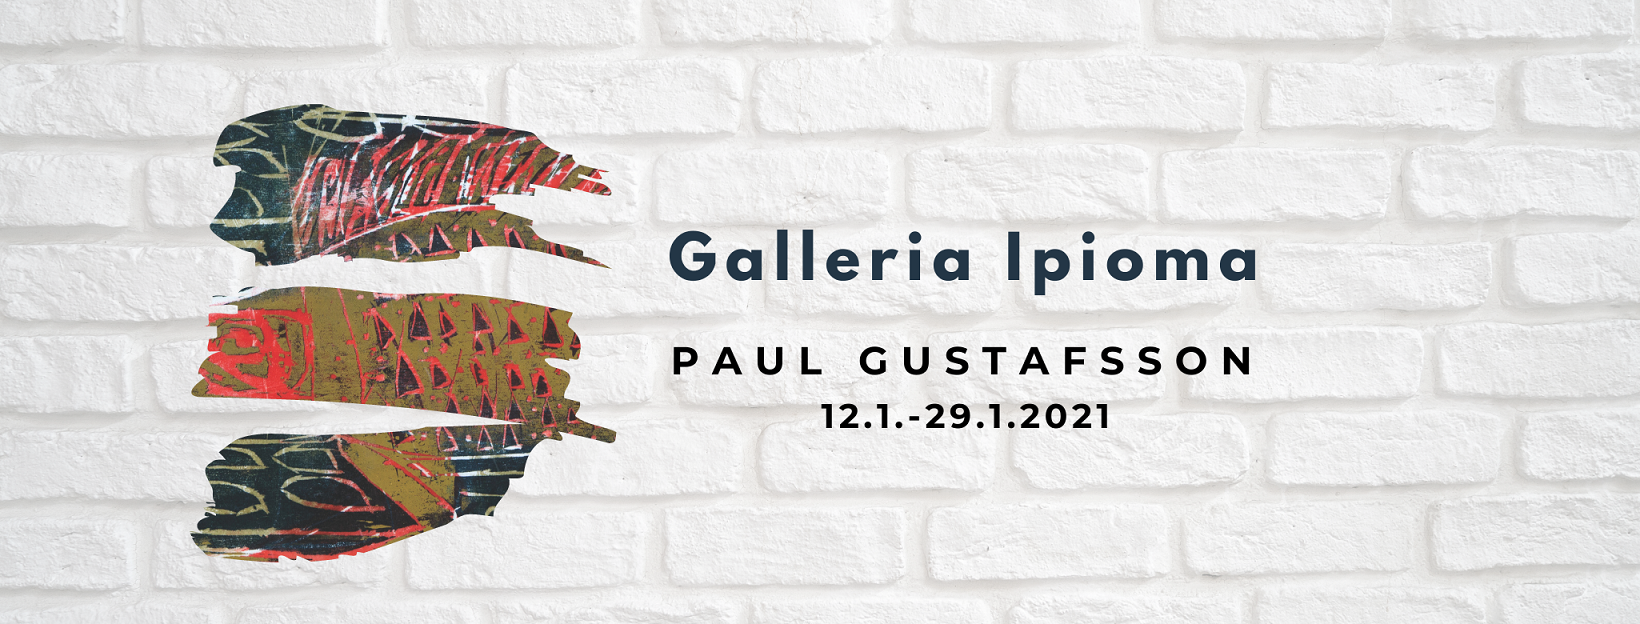 Link to event Gallery Ipioma's Exhibition in January: Paul Gustafsson